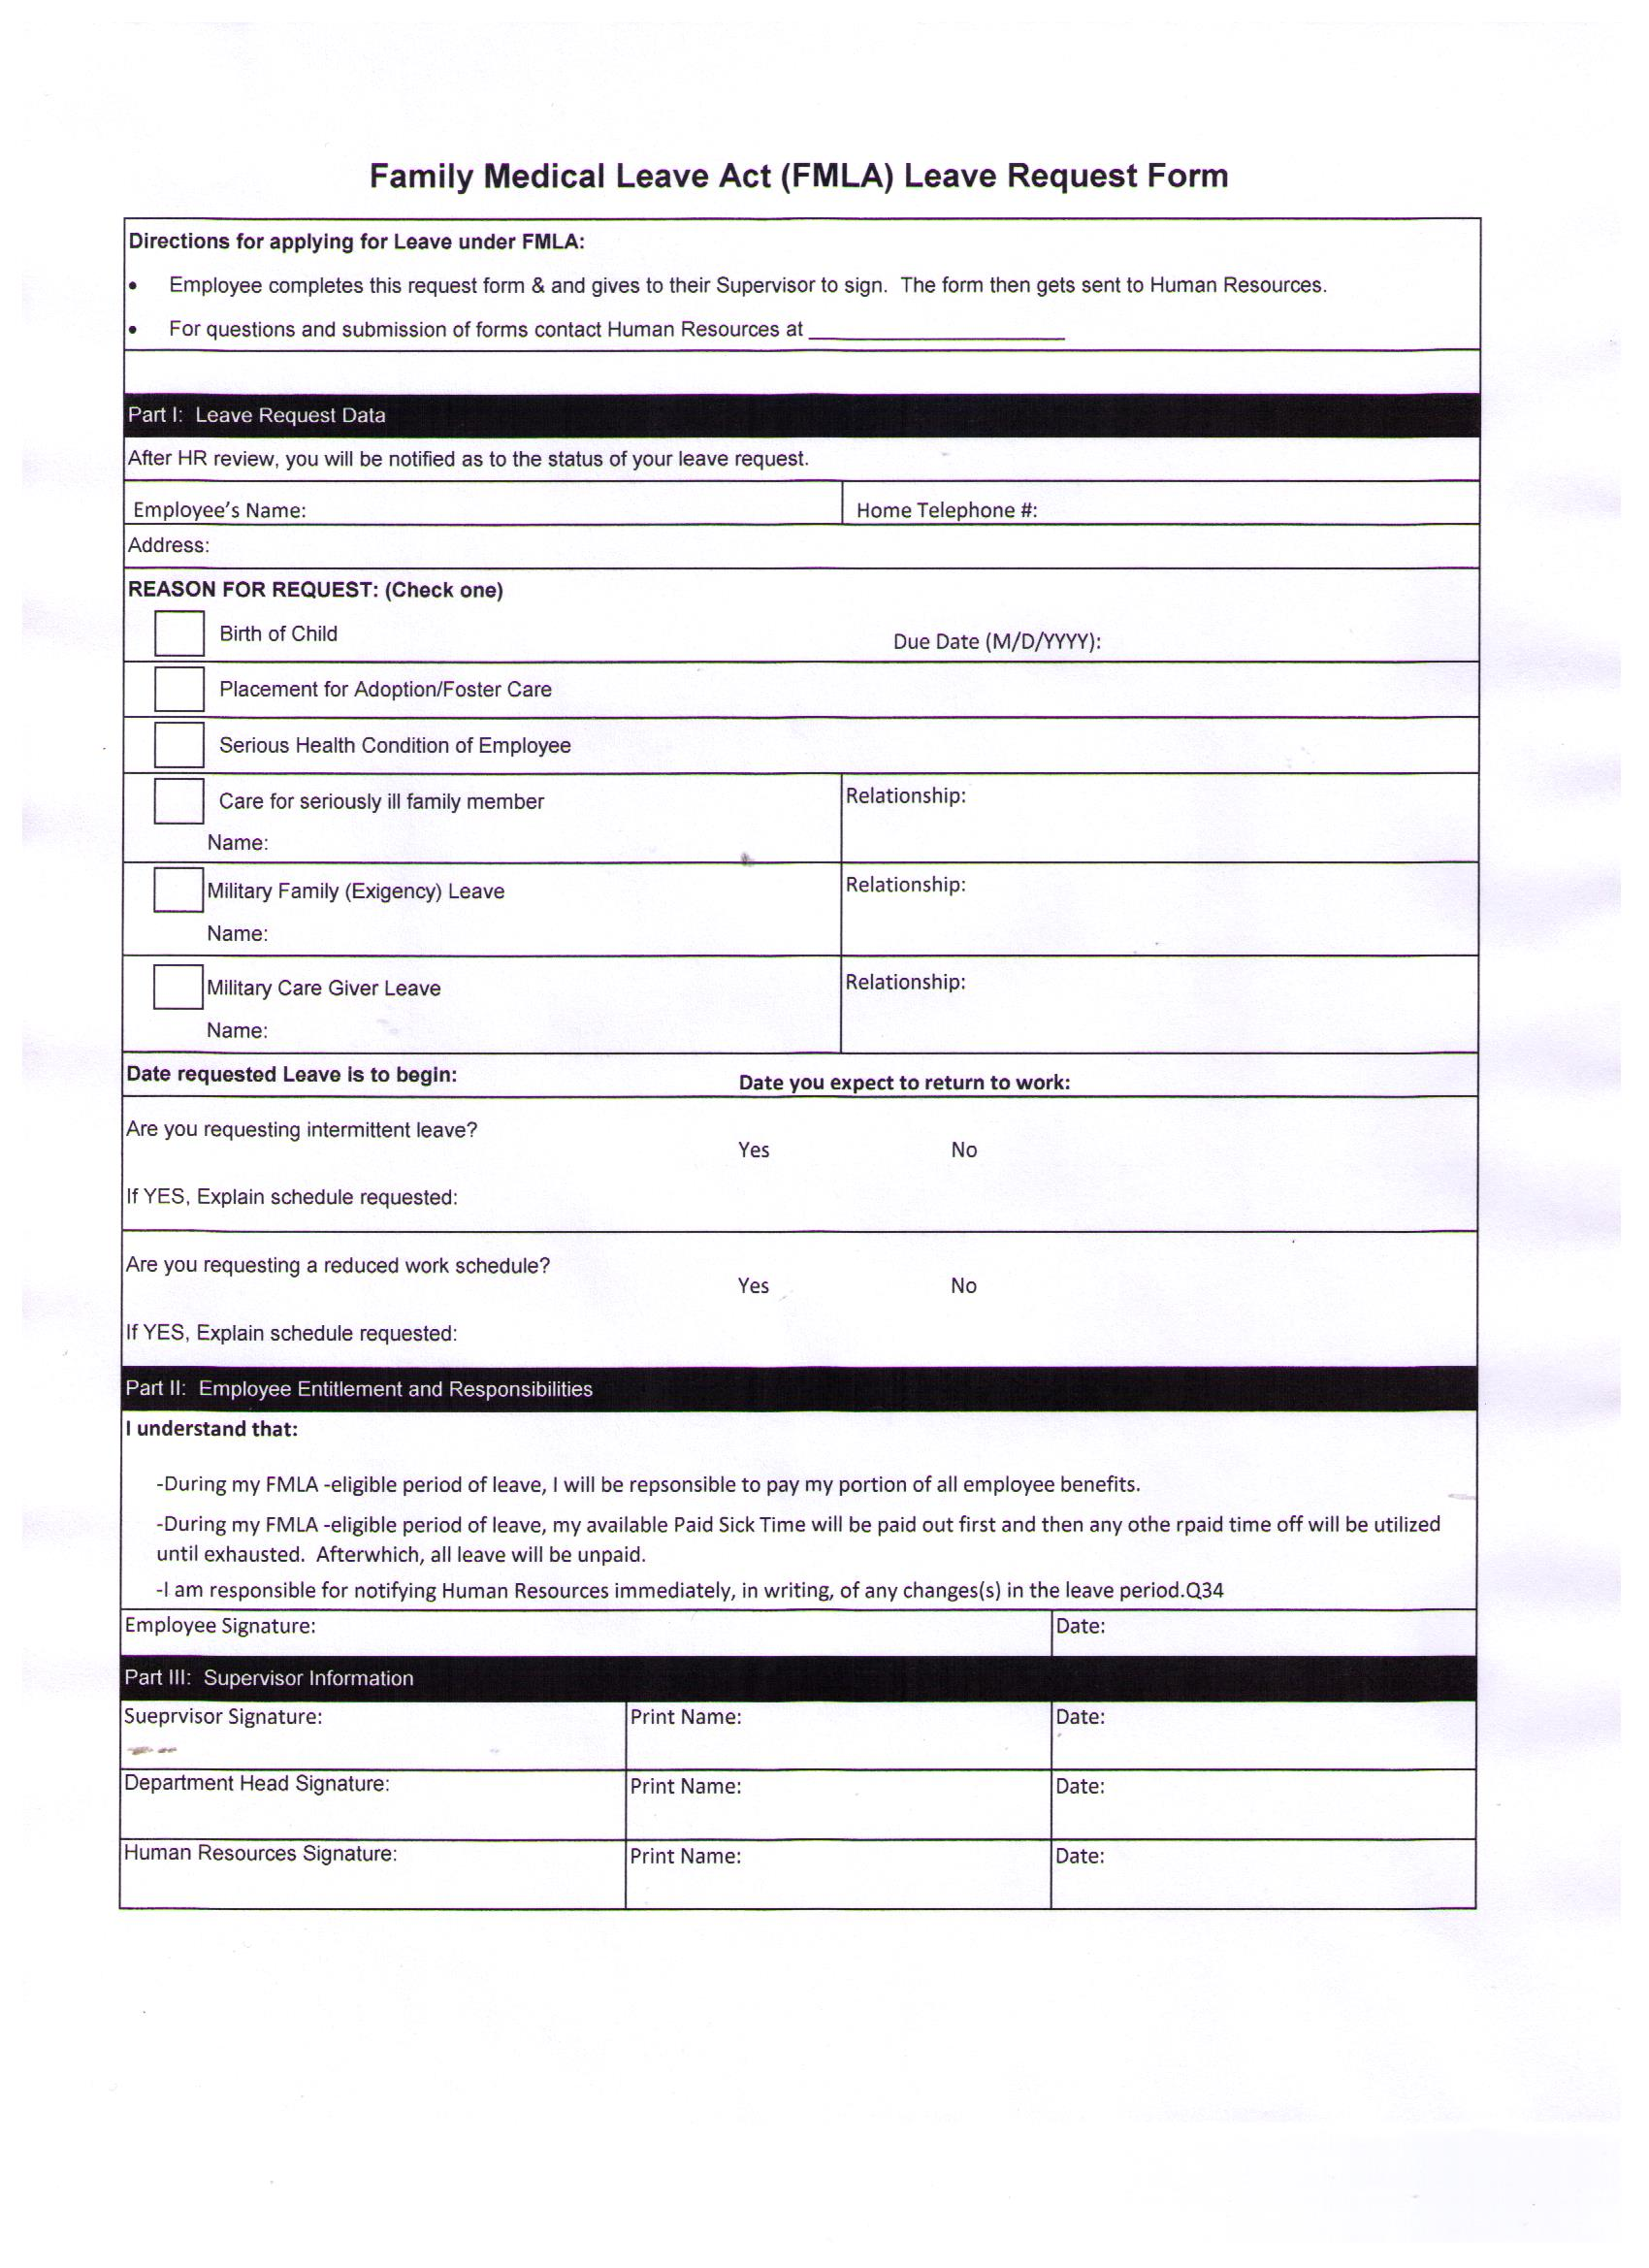 human resources toolkit forms american ambulance association - Hr Form